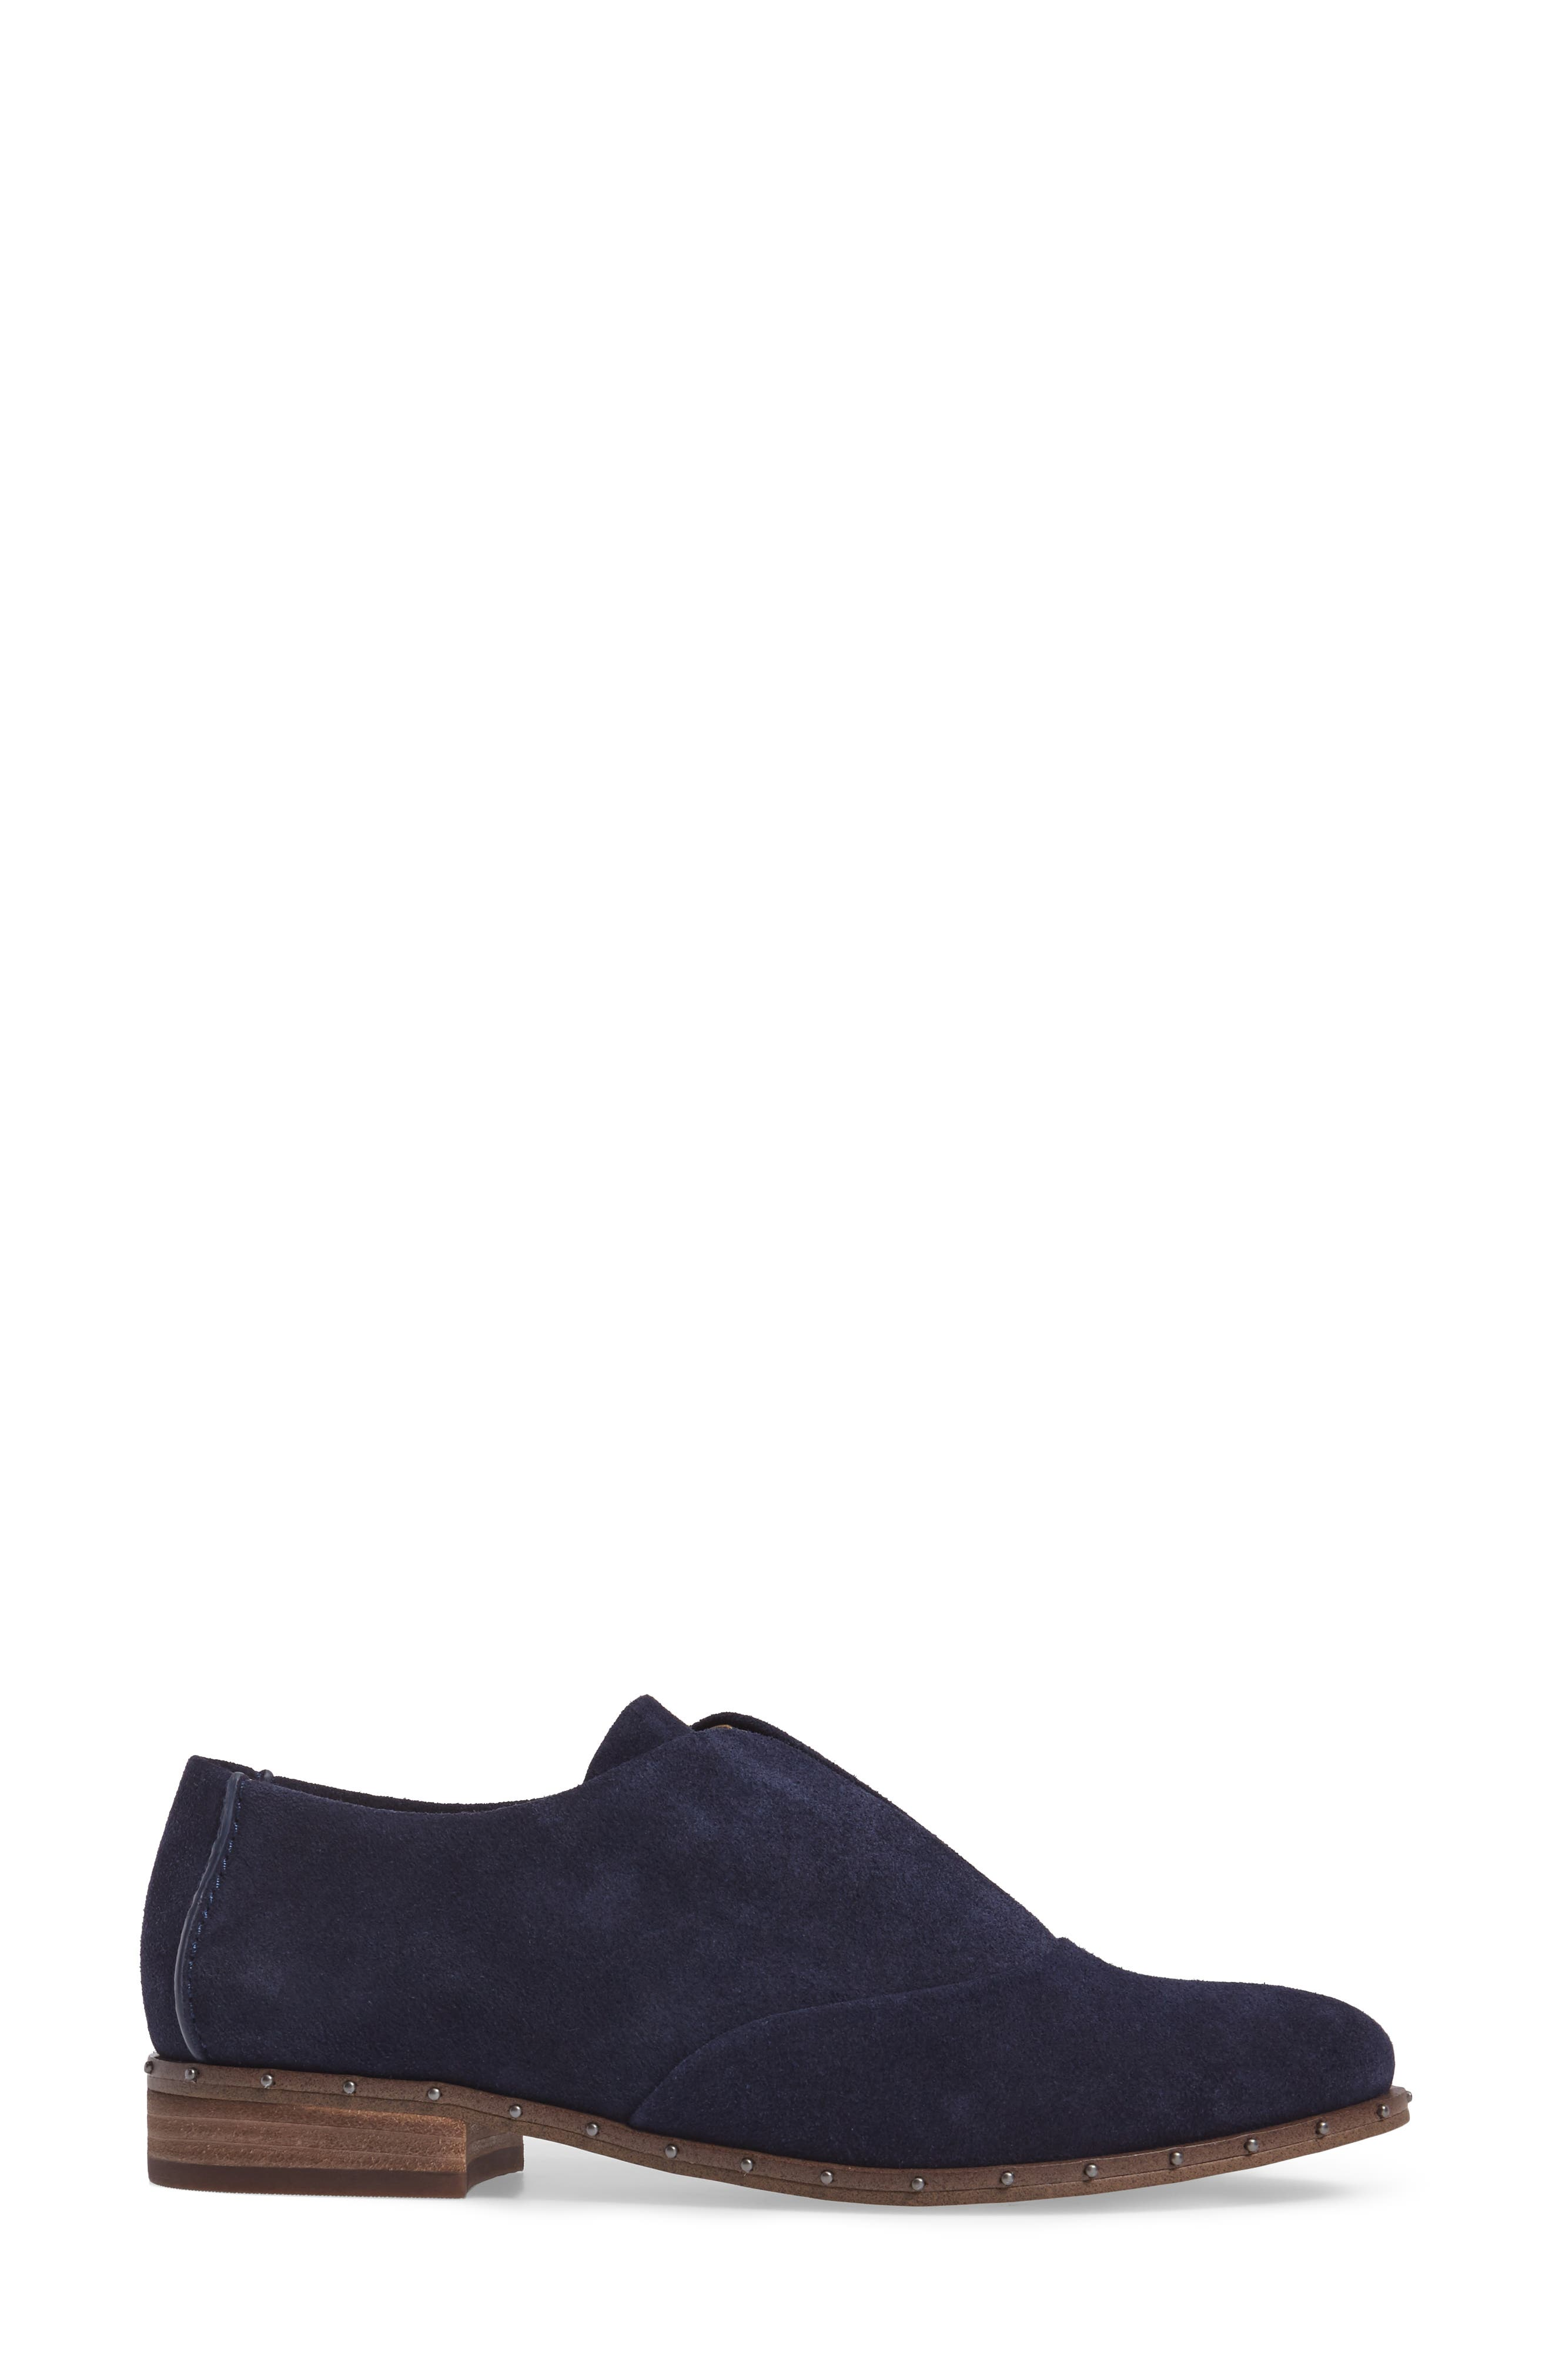 Deandra Studded Laceless Oxford,                             Alternate thumbnail 3, color,                             Navy Suede